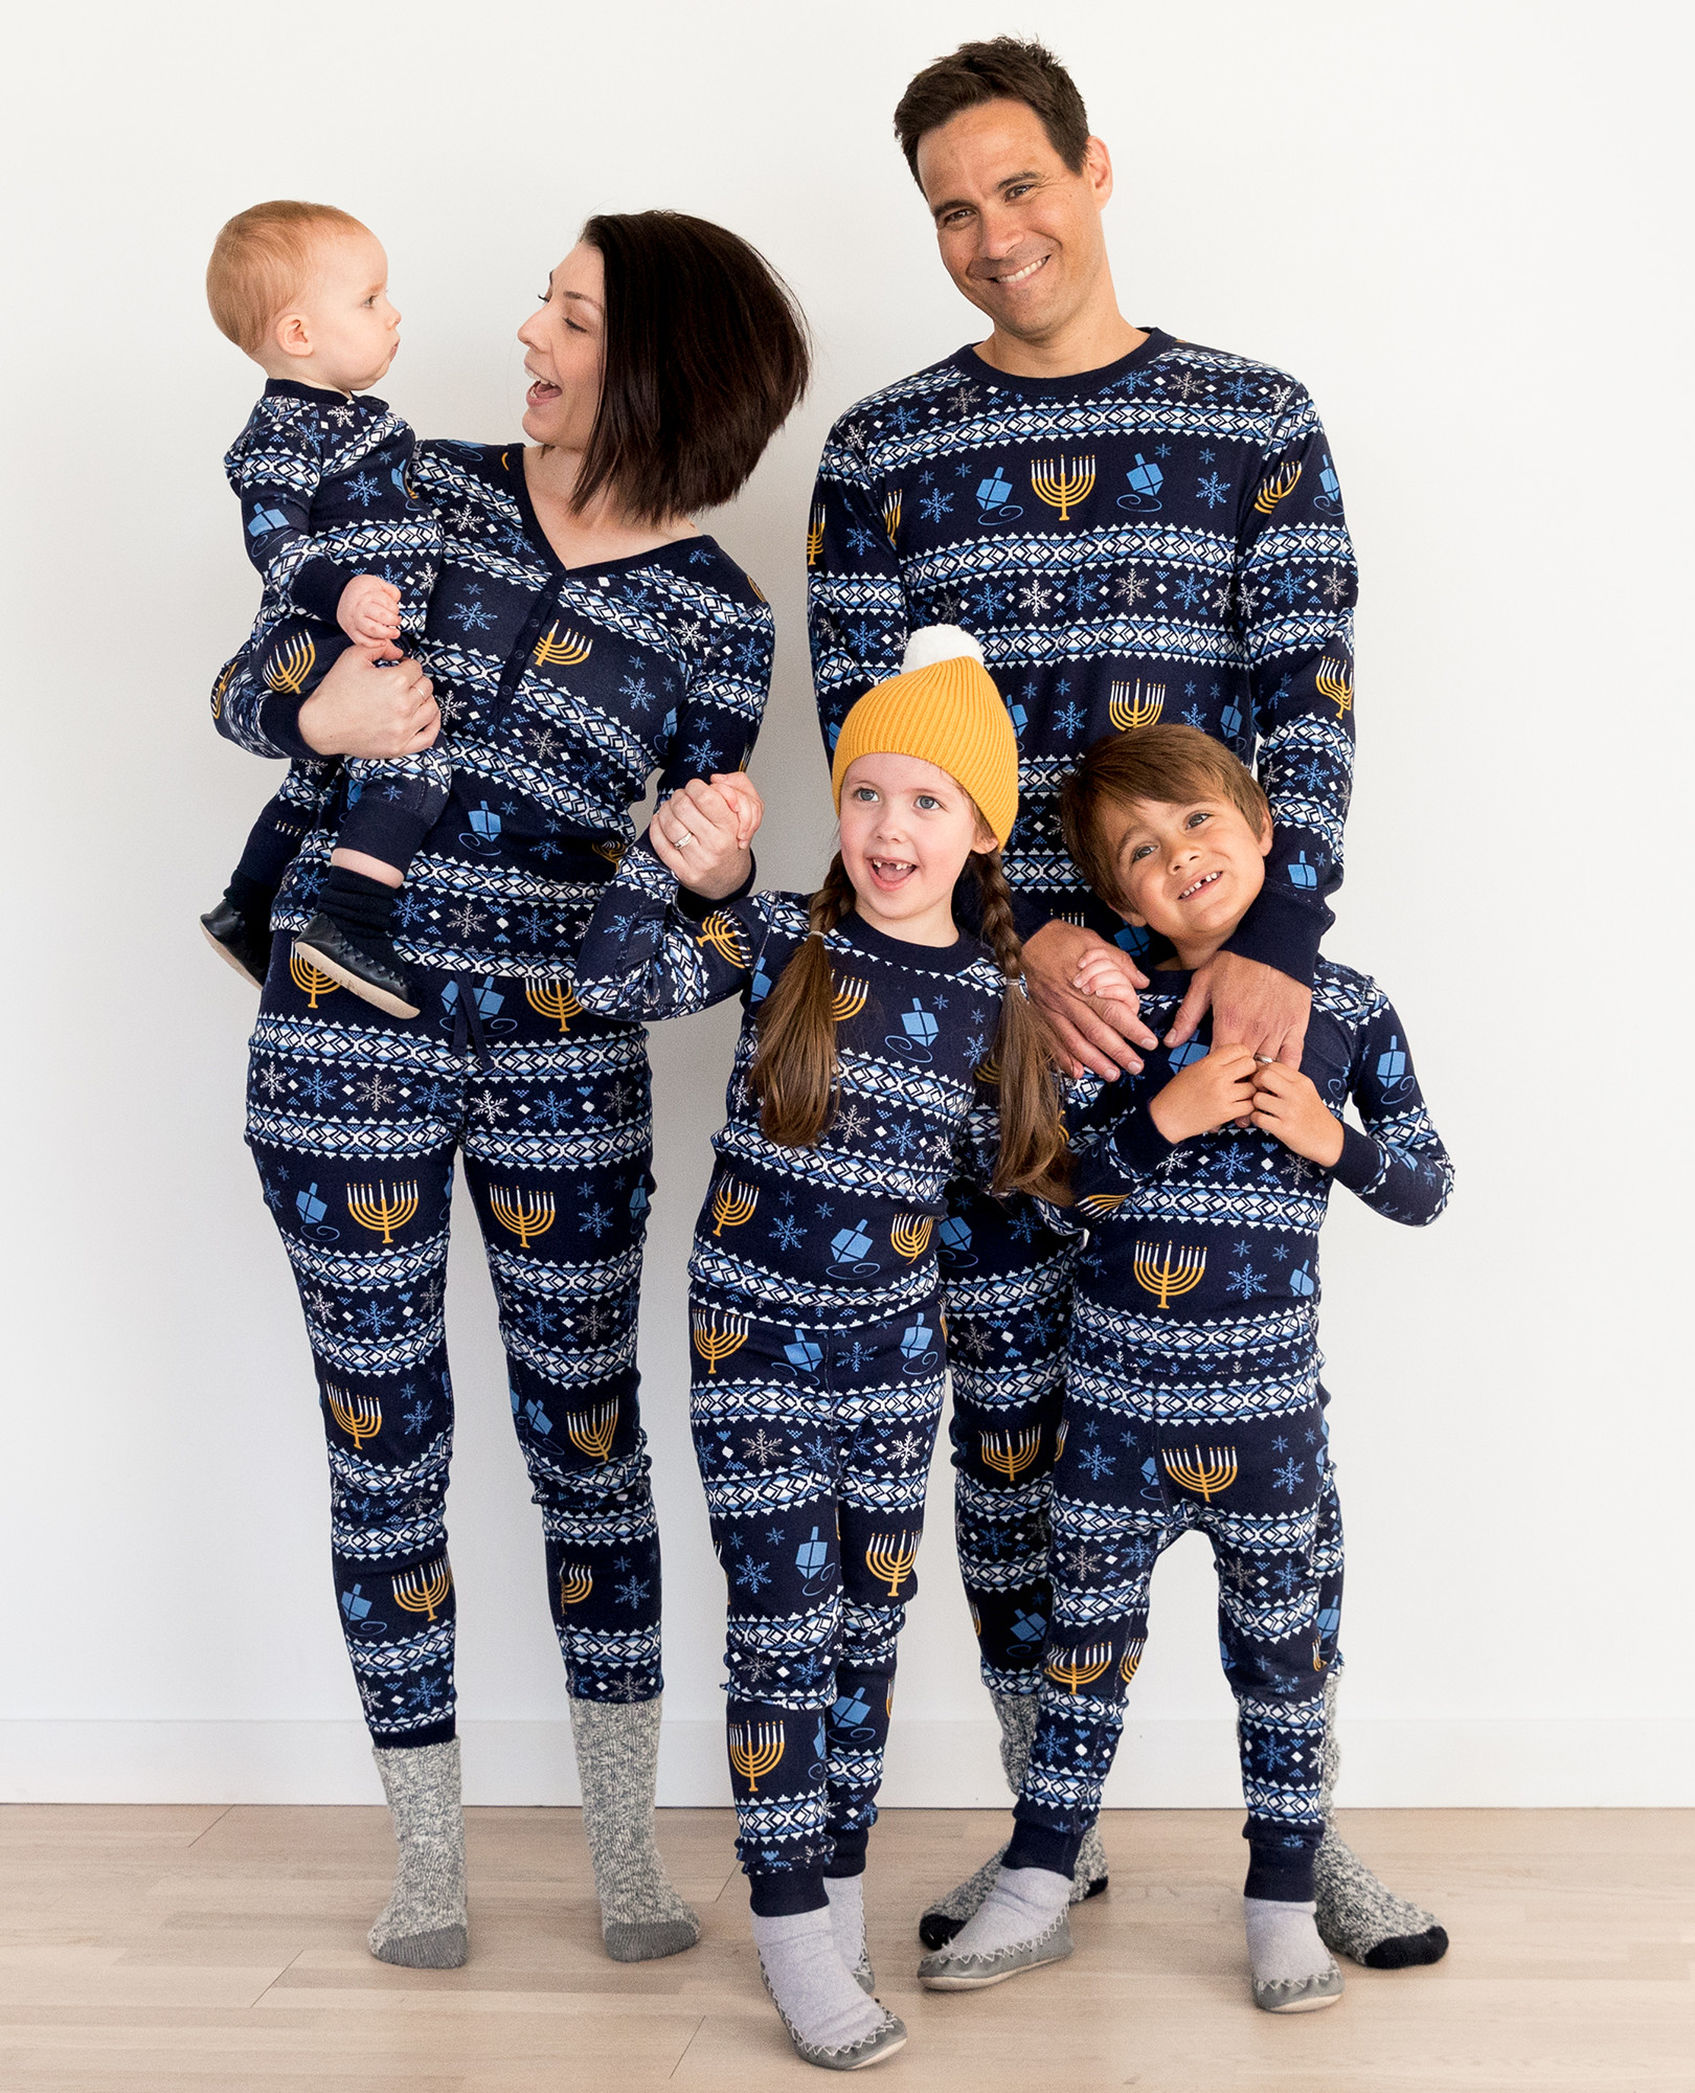 Hanukkah Pajamas for the Whole Family